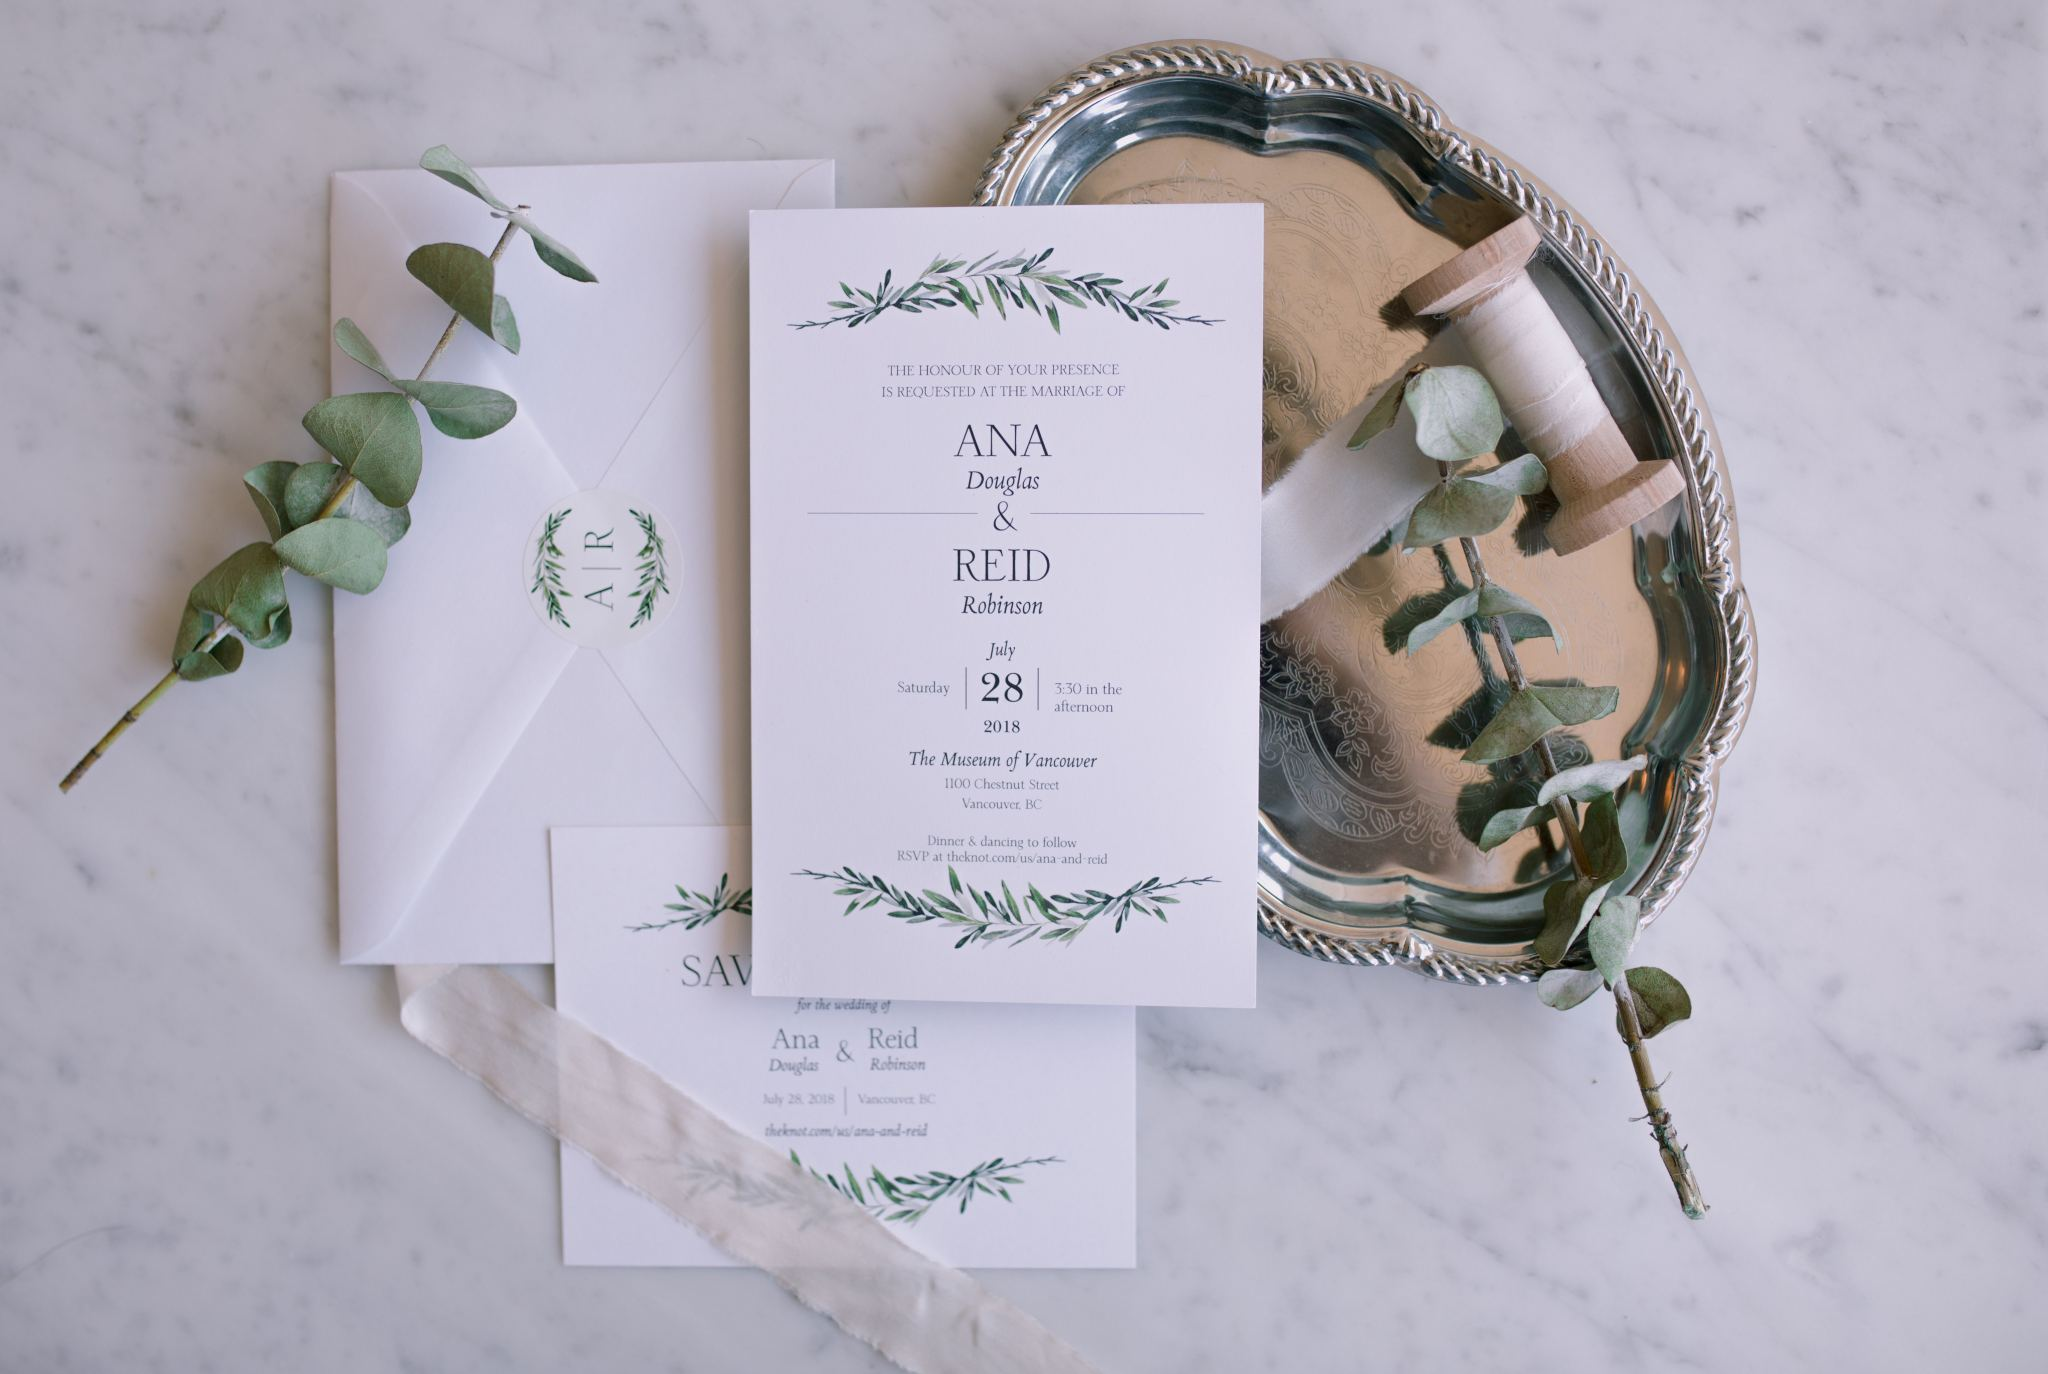 Vistaprint Invitations Wedding: Why I Chose Vistaprint For My Wedding Invitations